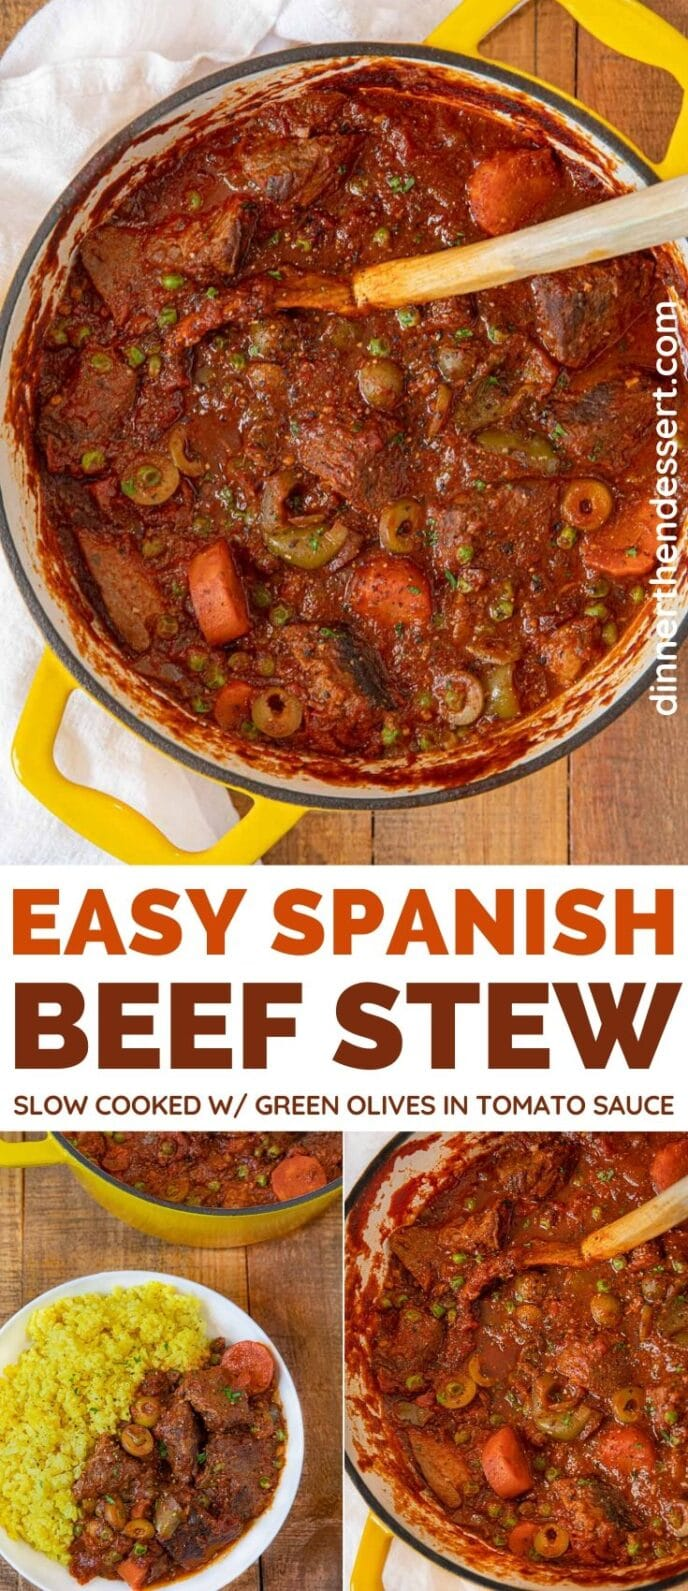 Spanish Beef Stew collage